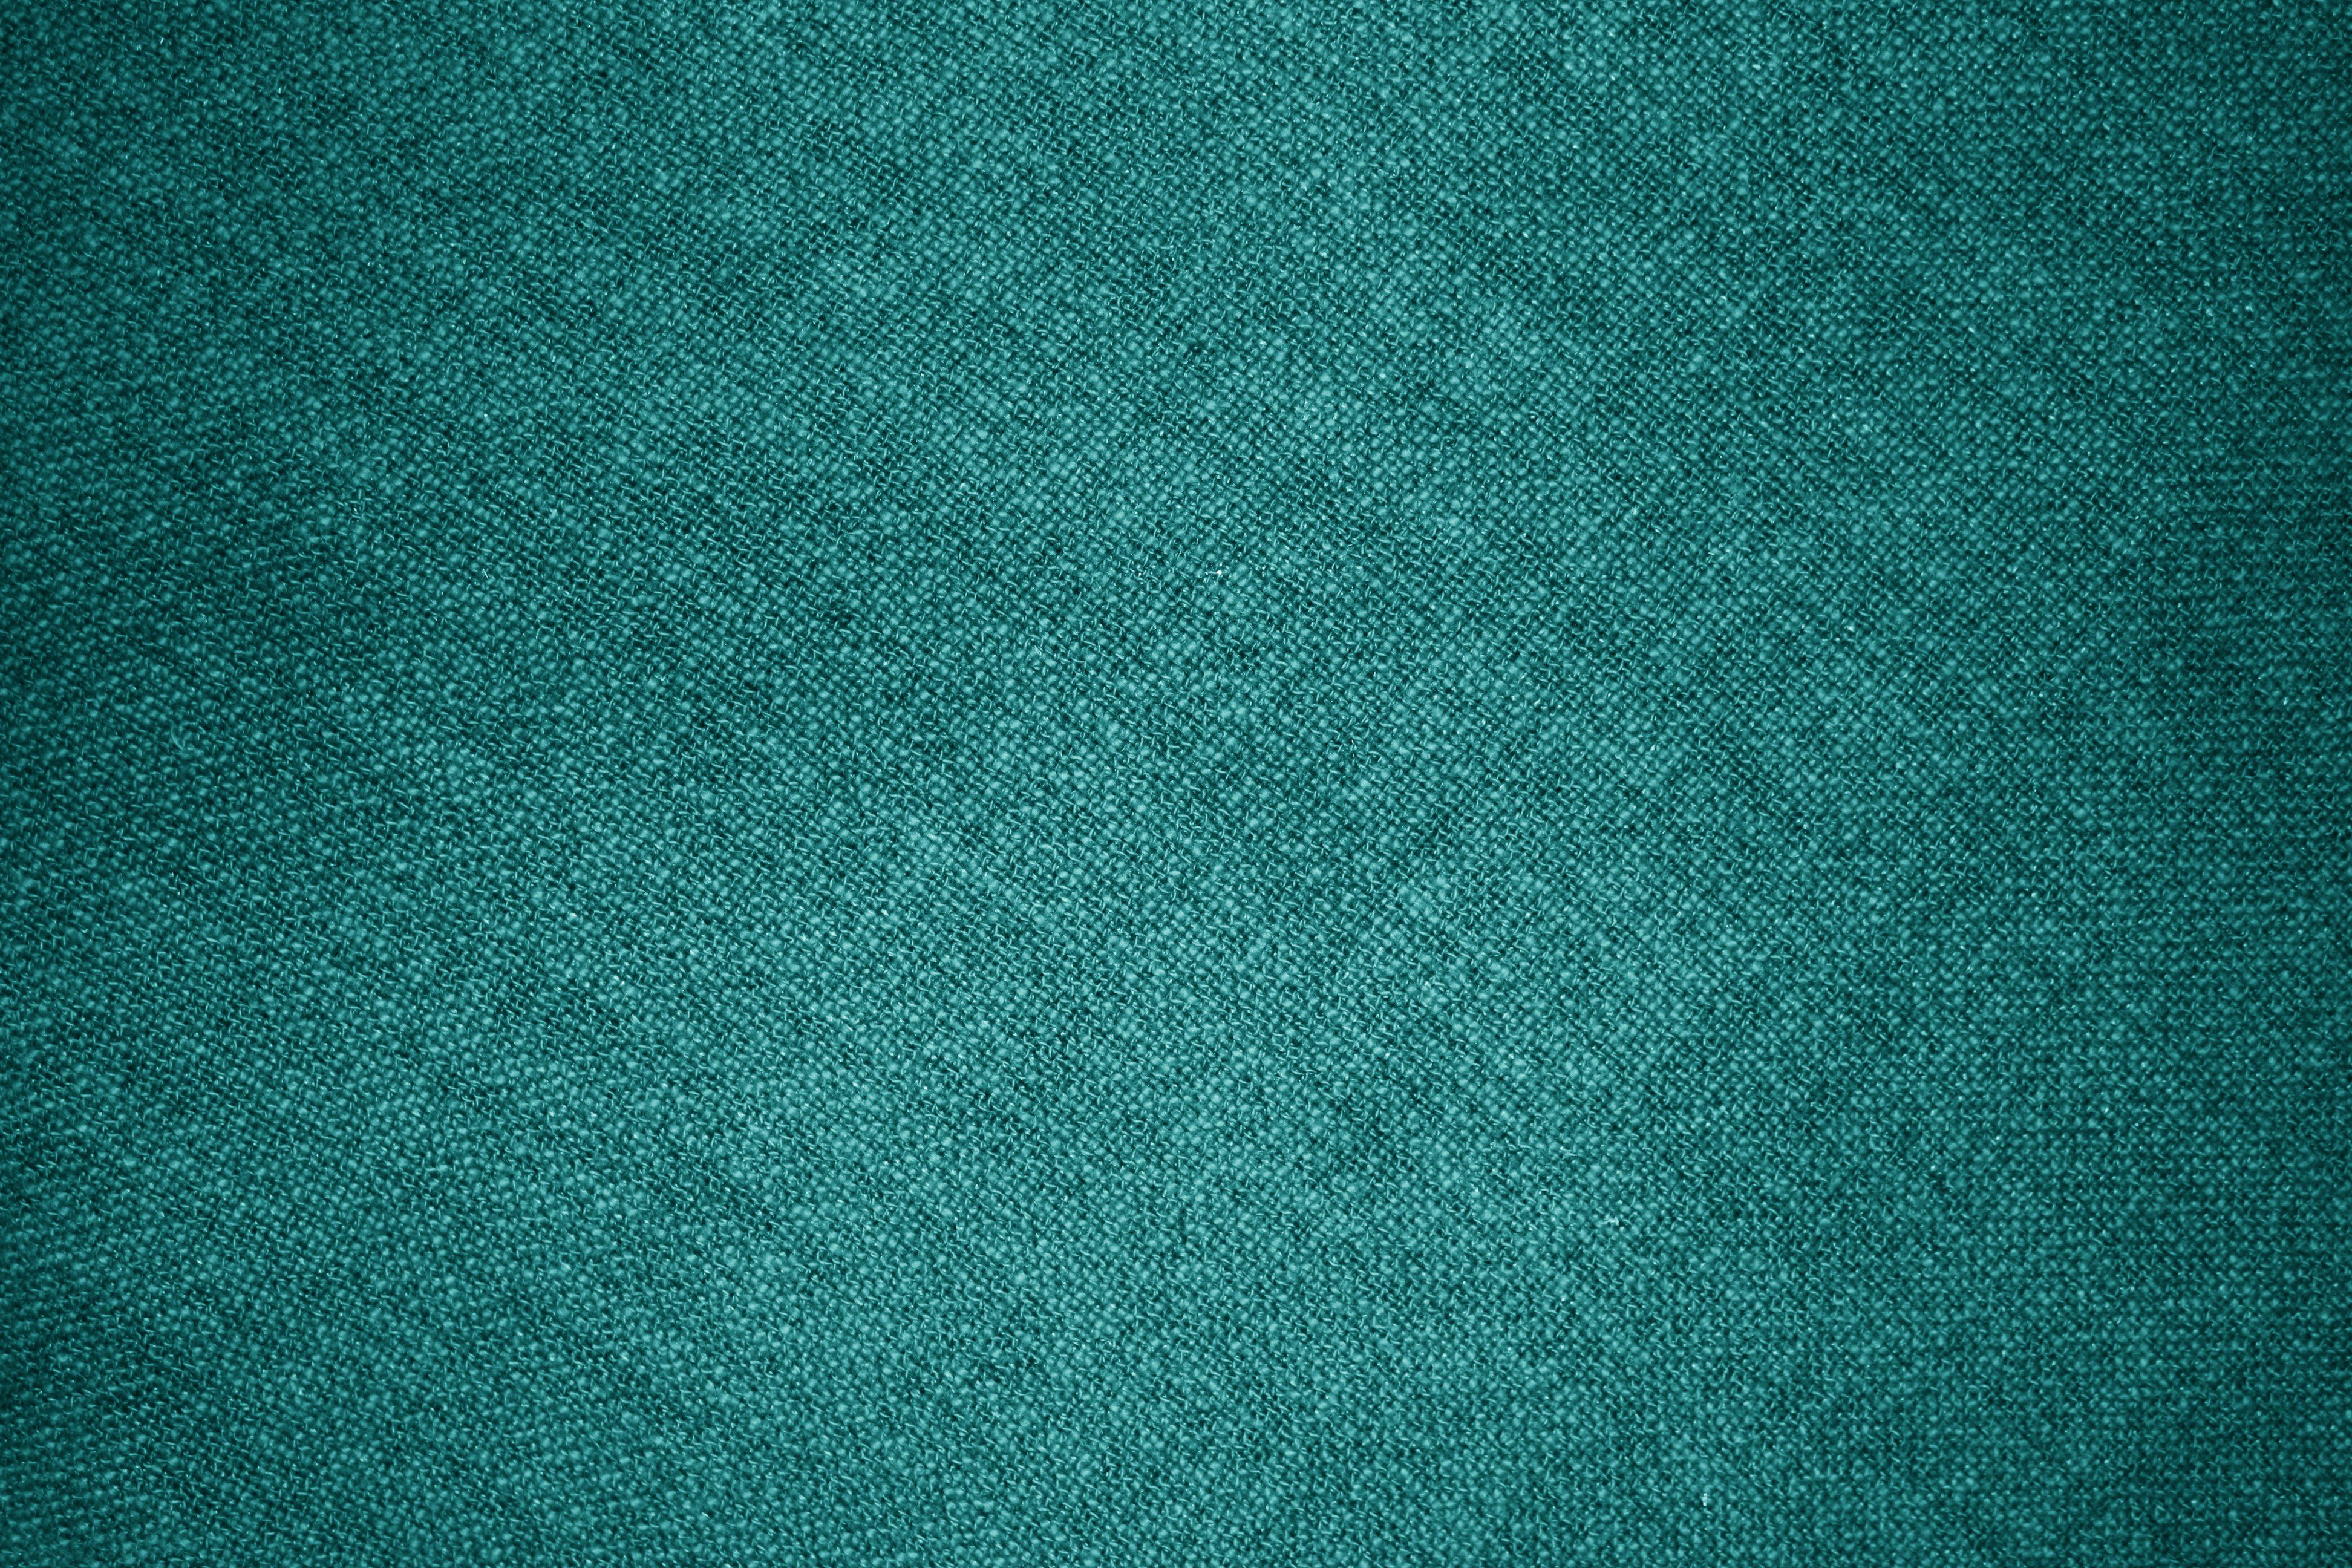 The Texture Of Teal And Turquoise: Pin By Candy Pimploy On Fabric Blue